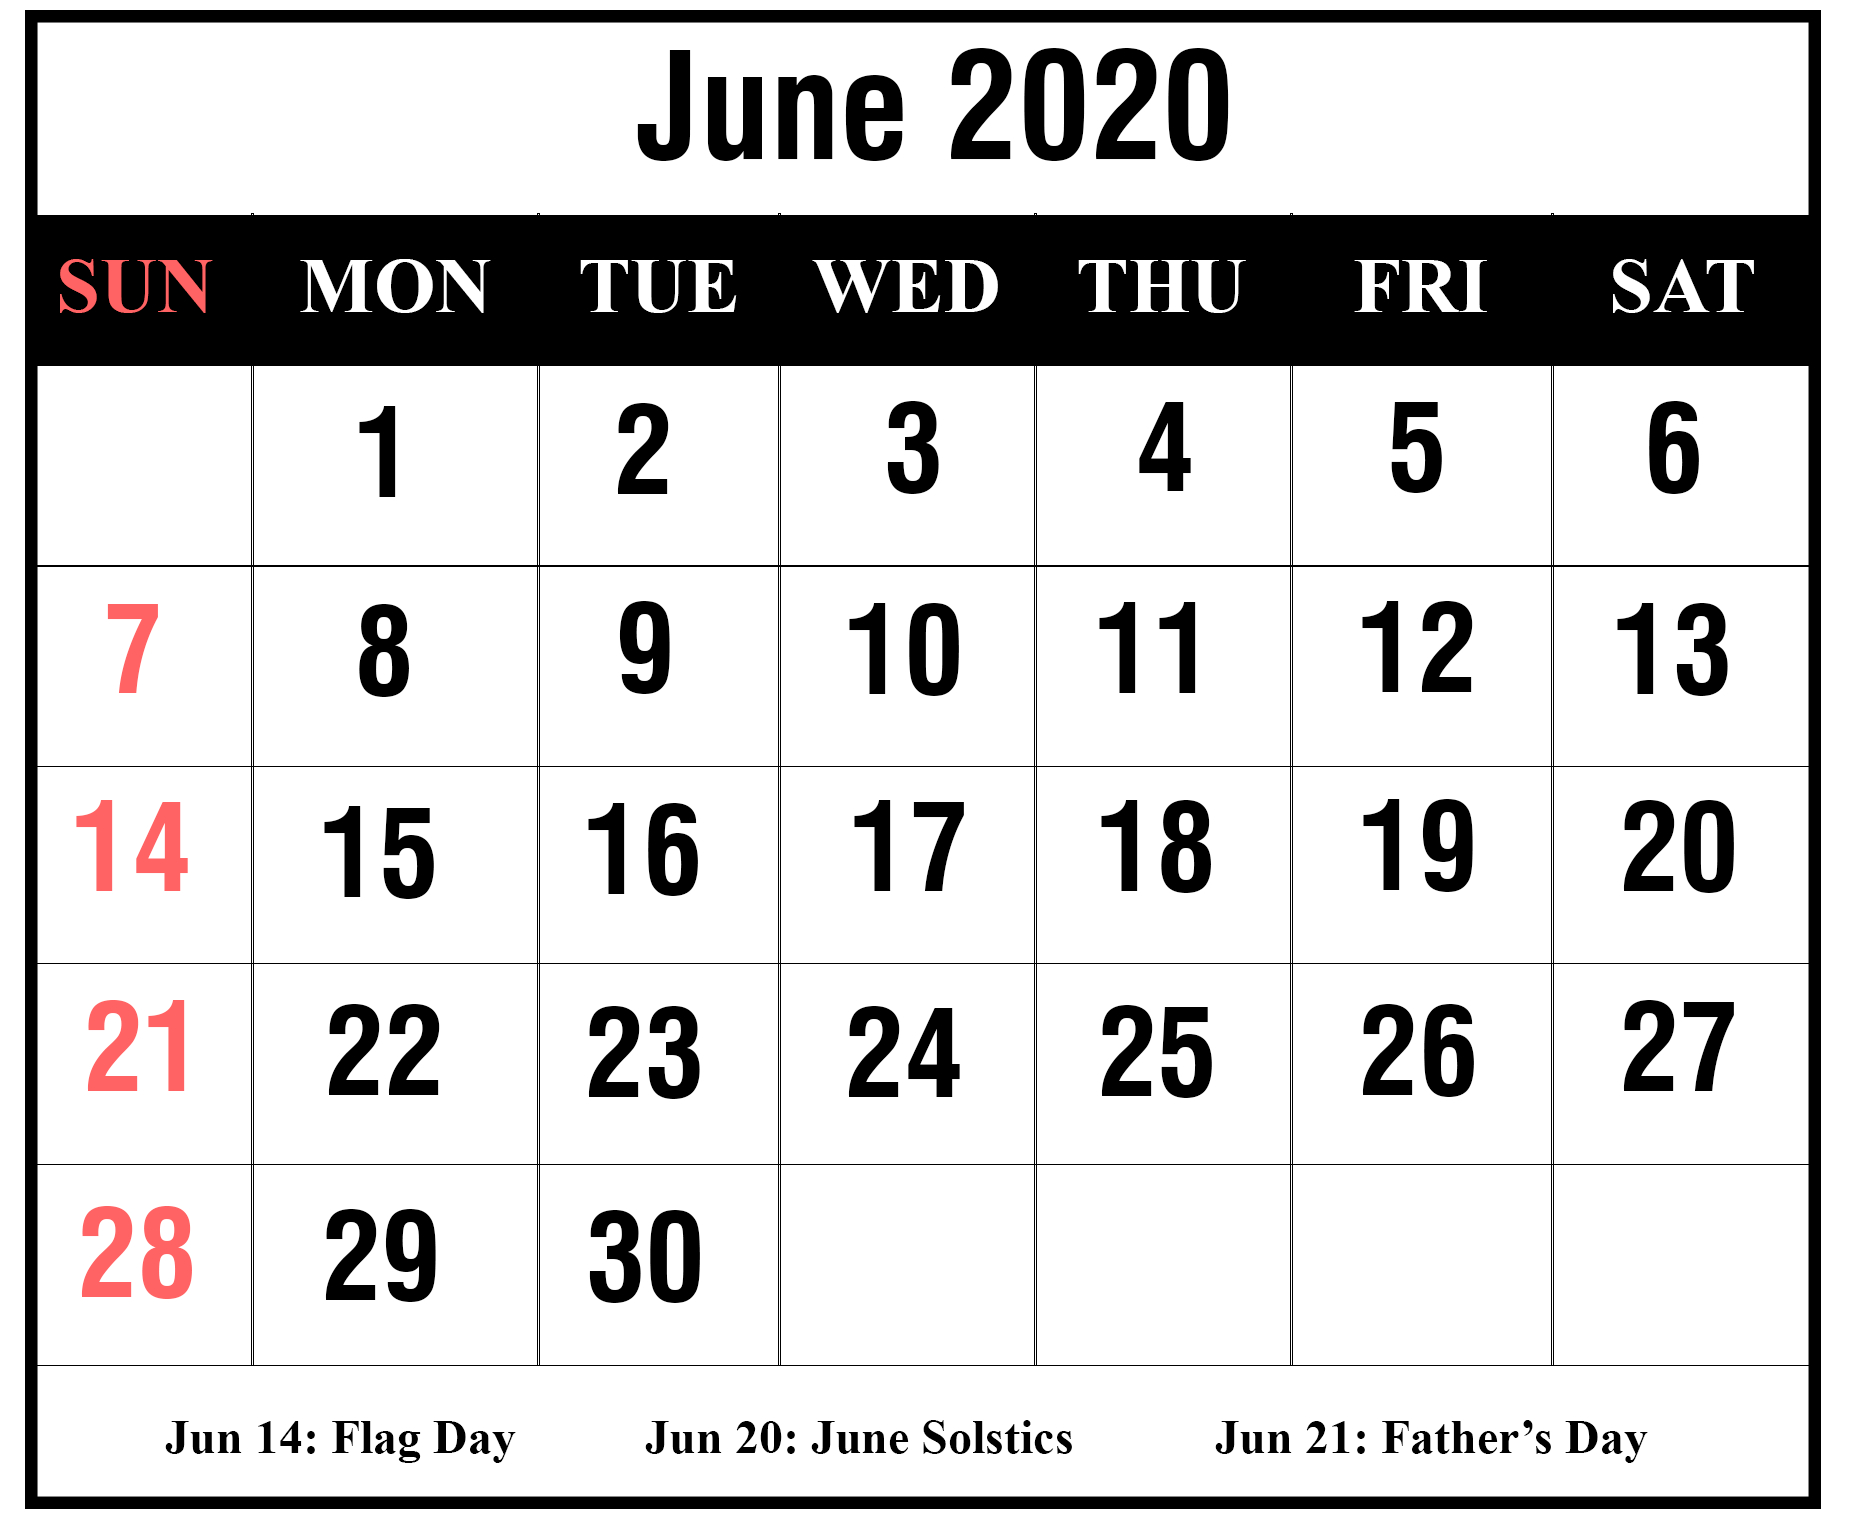 June 2020 Calendar Printable - Ko-Fi ❤️ Where Creators Get